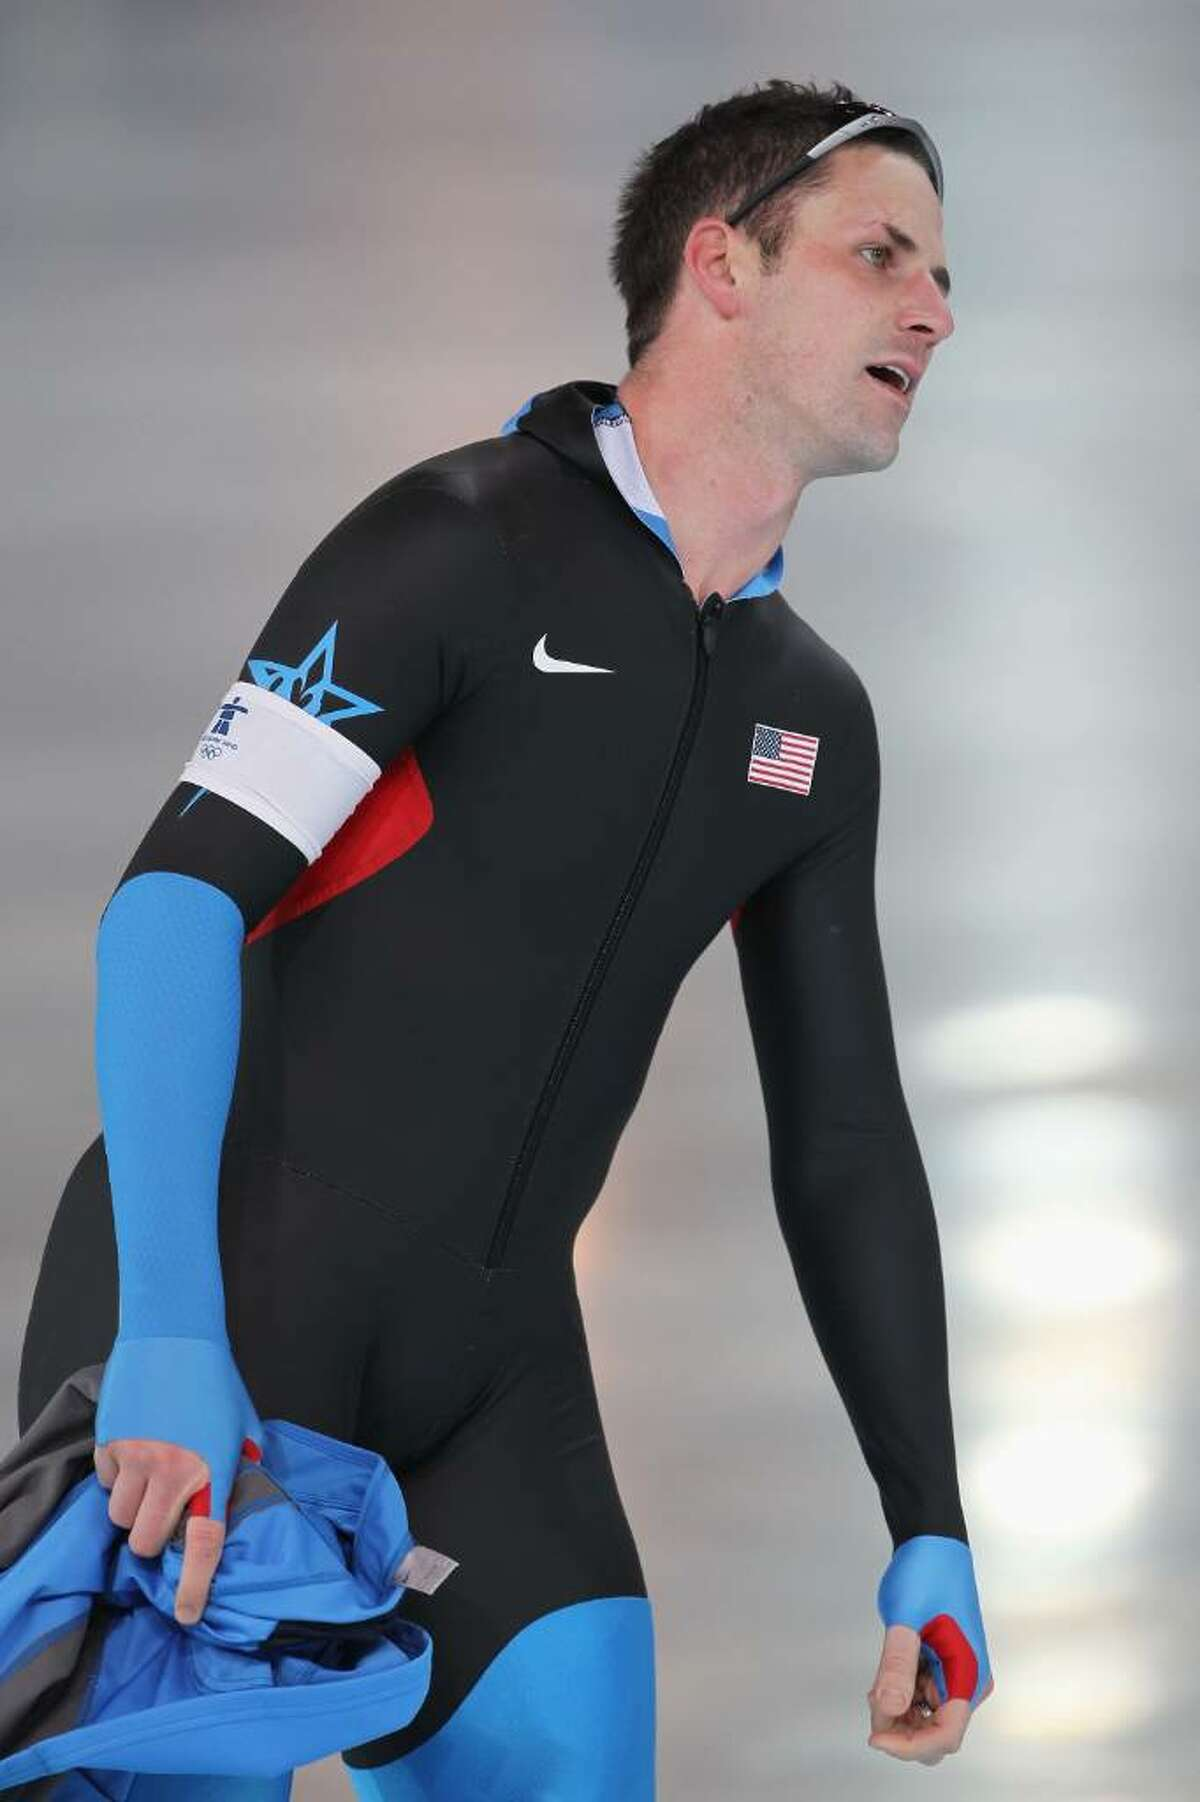 VANCOUVER, BC - FEBRUARY 17: Chad Hedrick of the United States after his men's speed skating 1000 m finals on day six of the Vancouver 2010 Winter Olympics at Richmond Olympic Oval on February 17, 2010 in Vancouver, Canada. (Photo by Jamie Squire/Getty Images) *** Local Caption *** Chad Hedrick